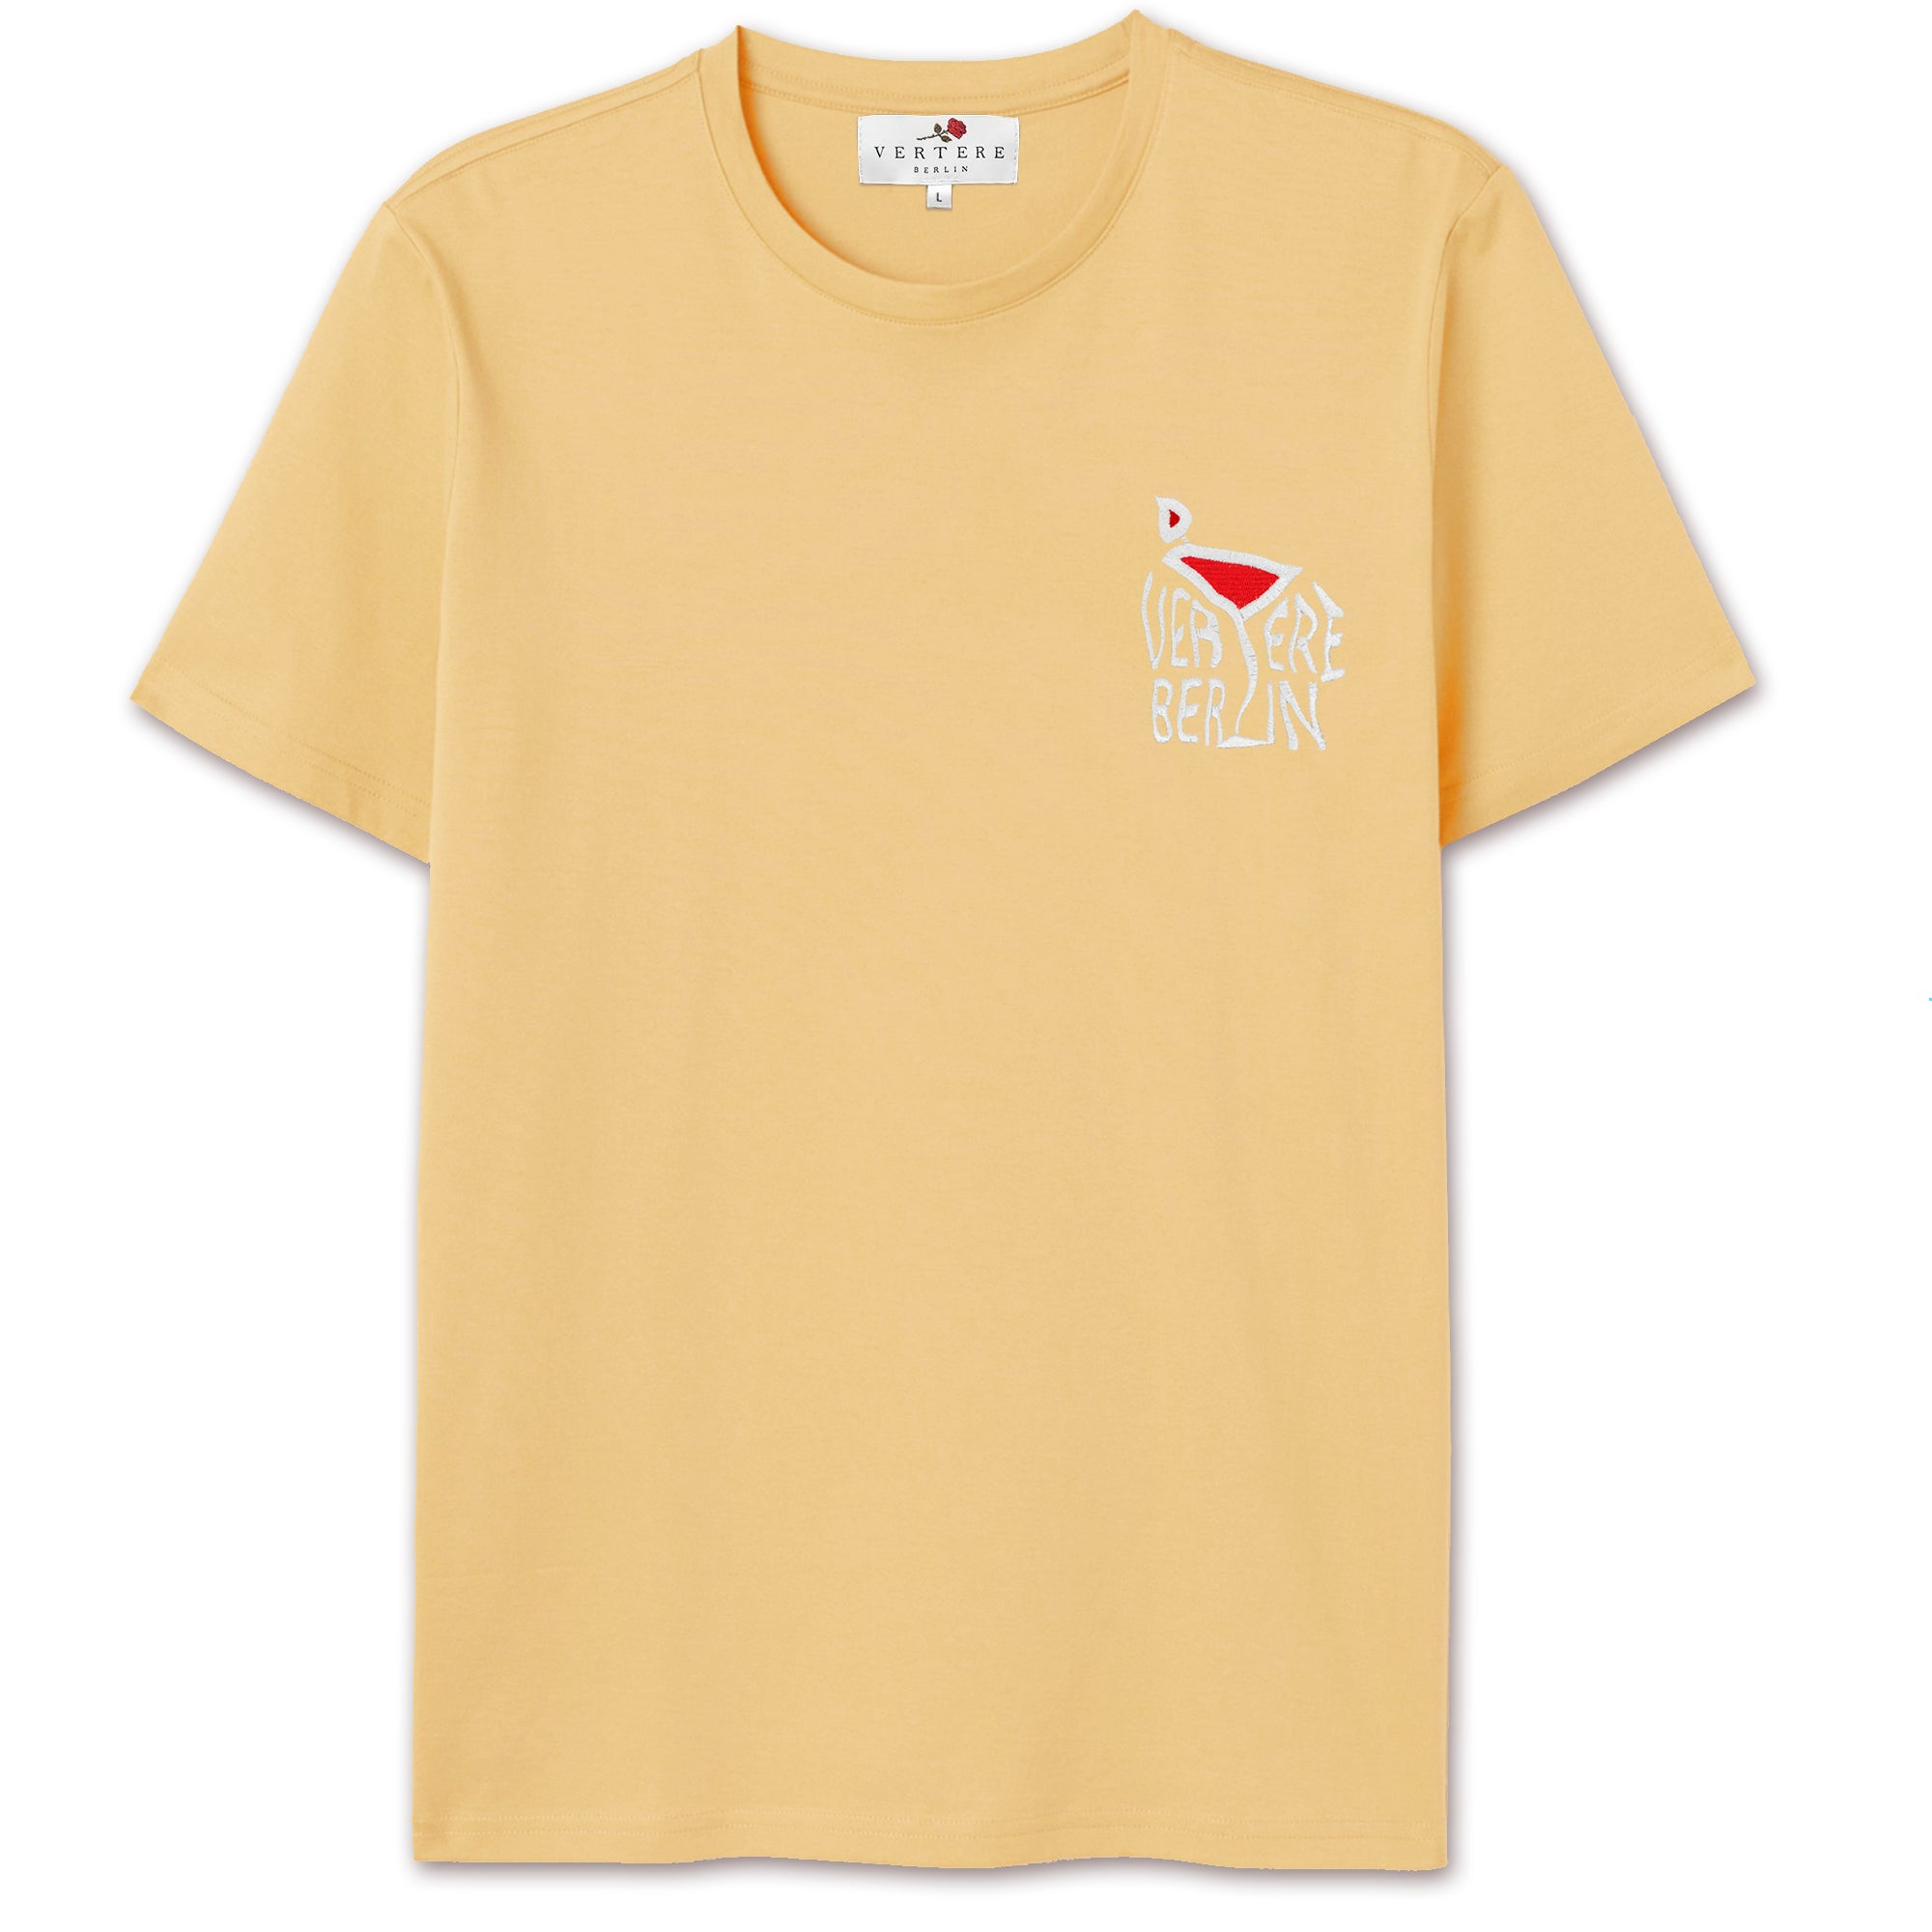 COCKTAIL T-SHIRT - PEACH